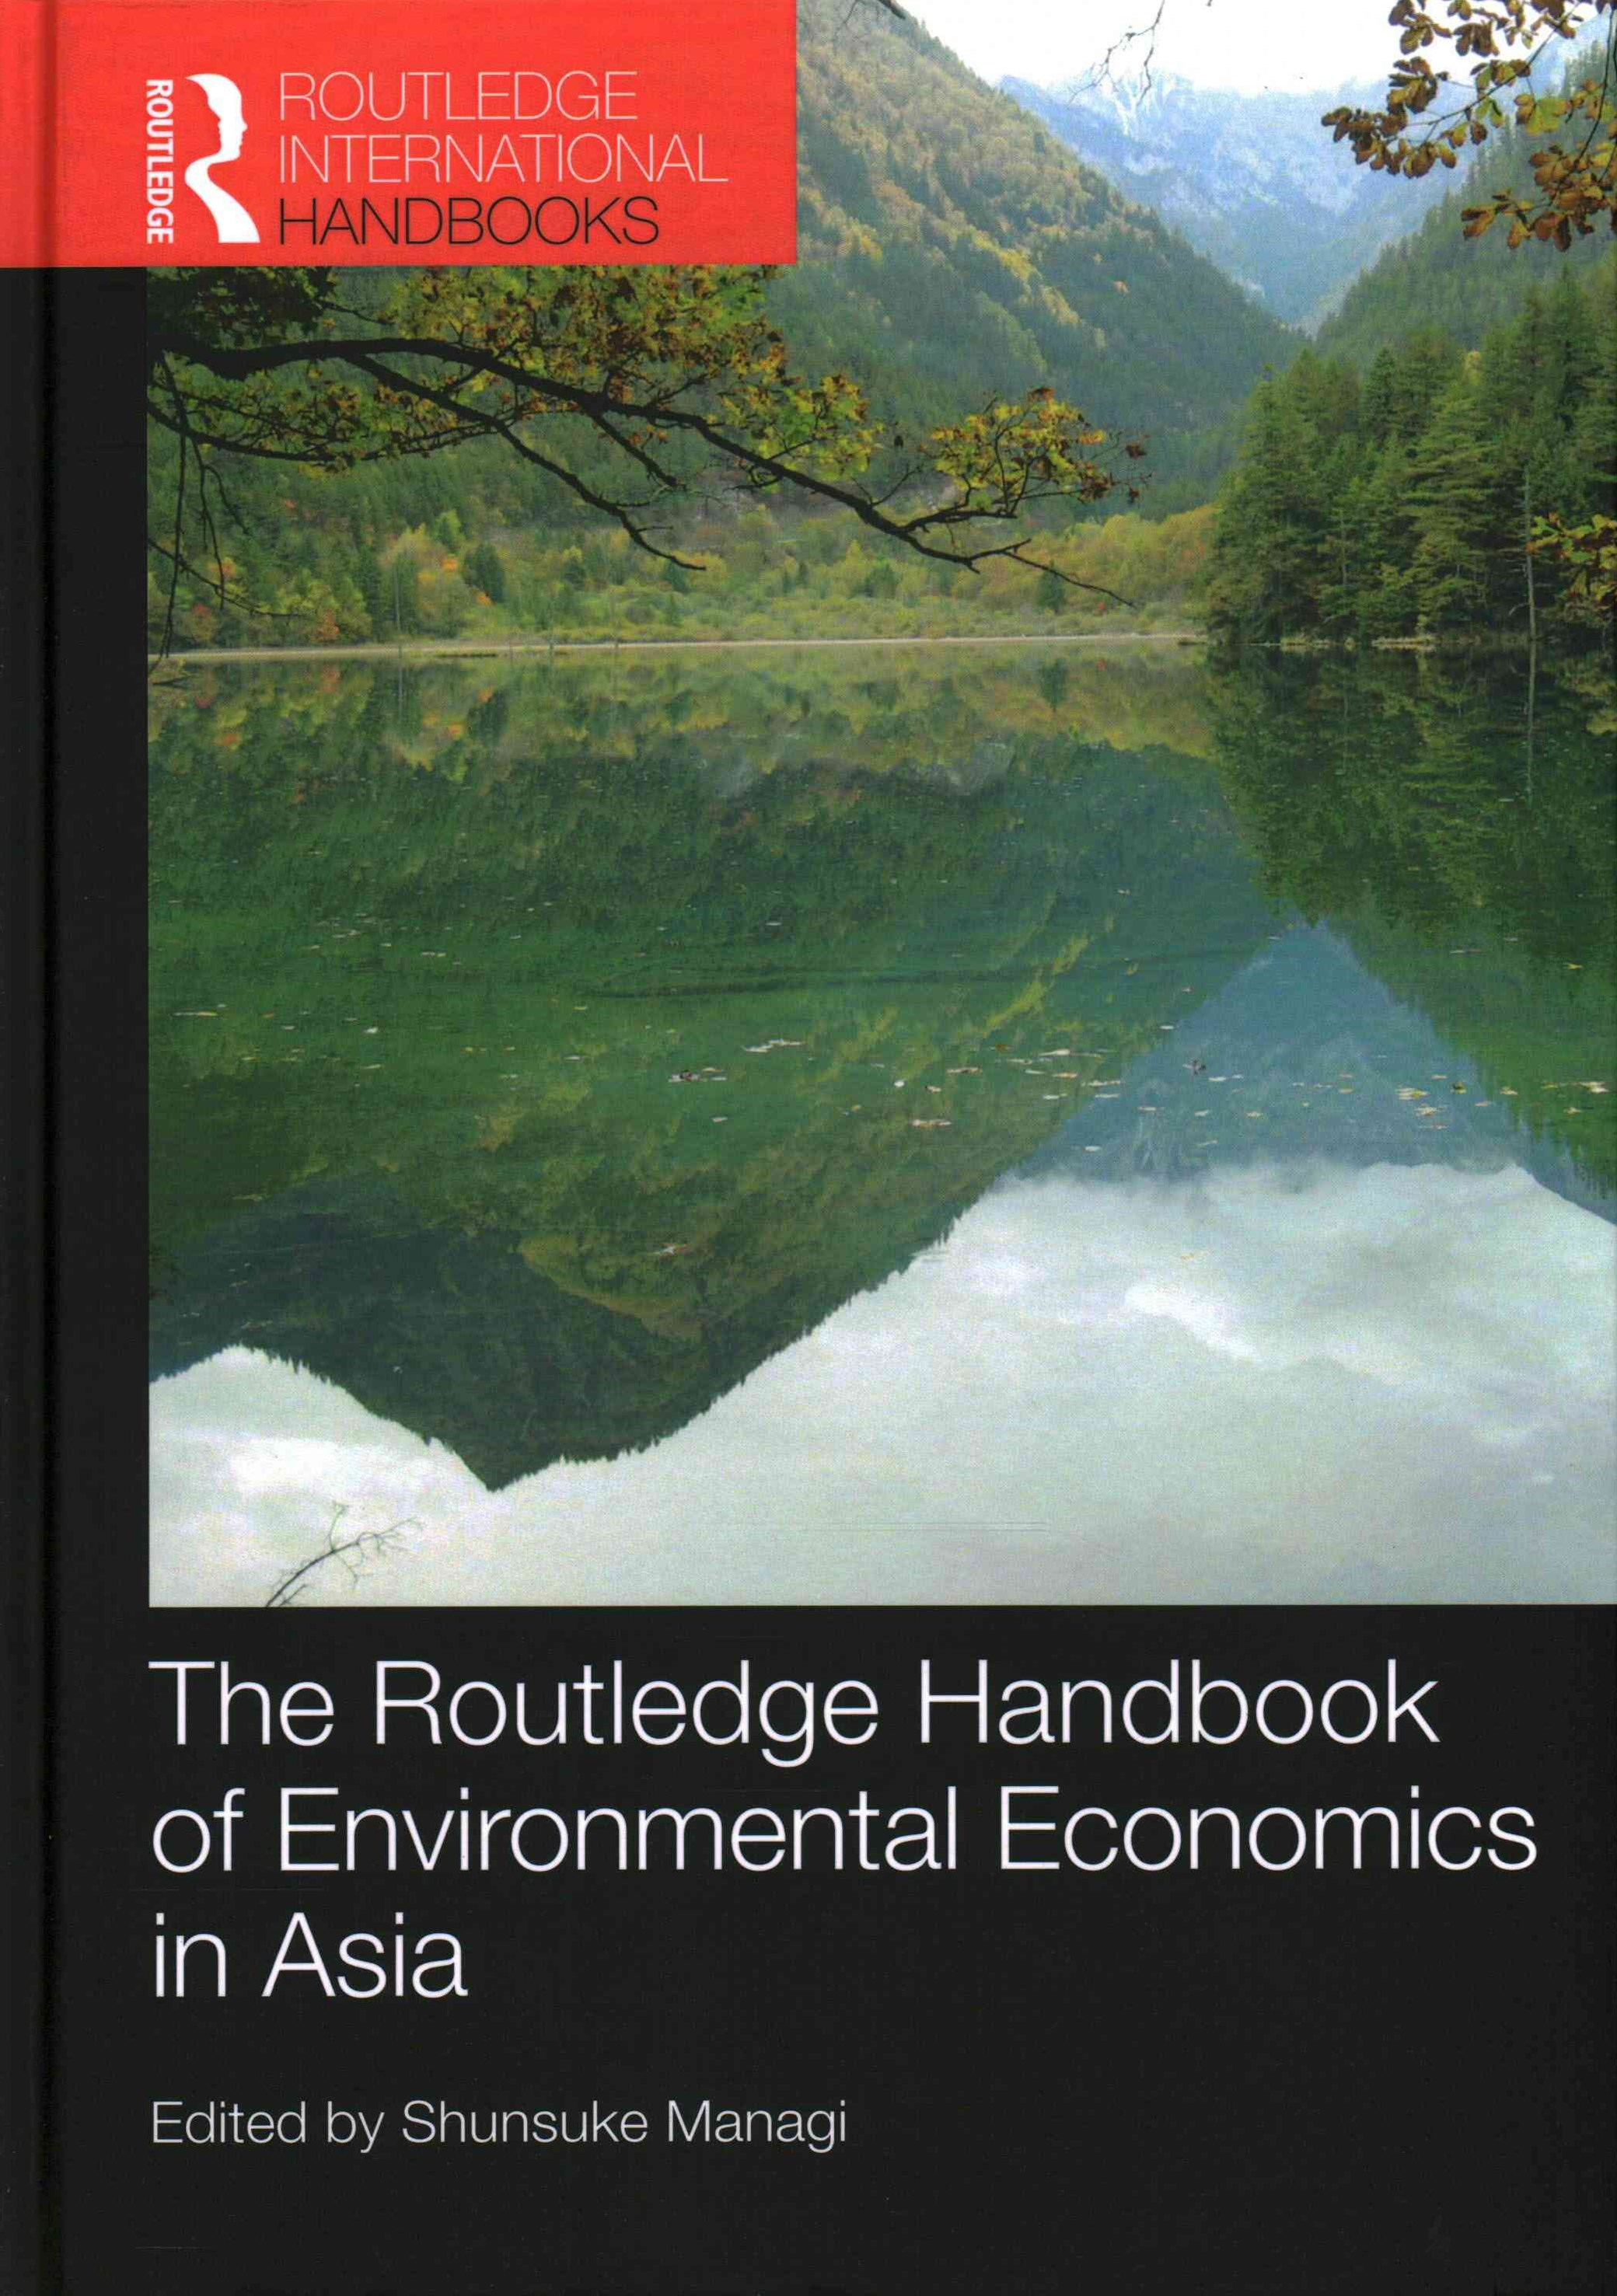 Routledge Handbook of Environmental Economics in Asia